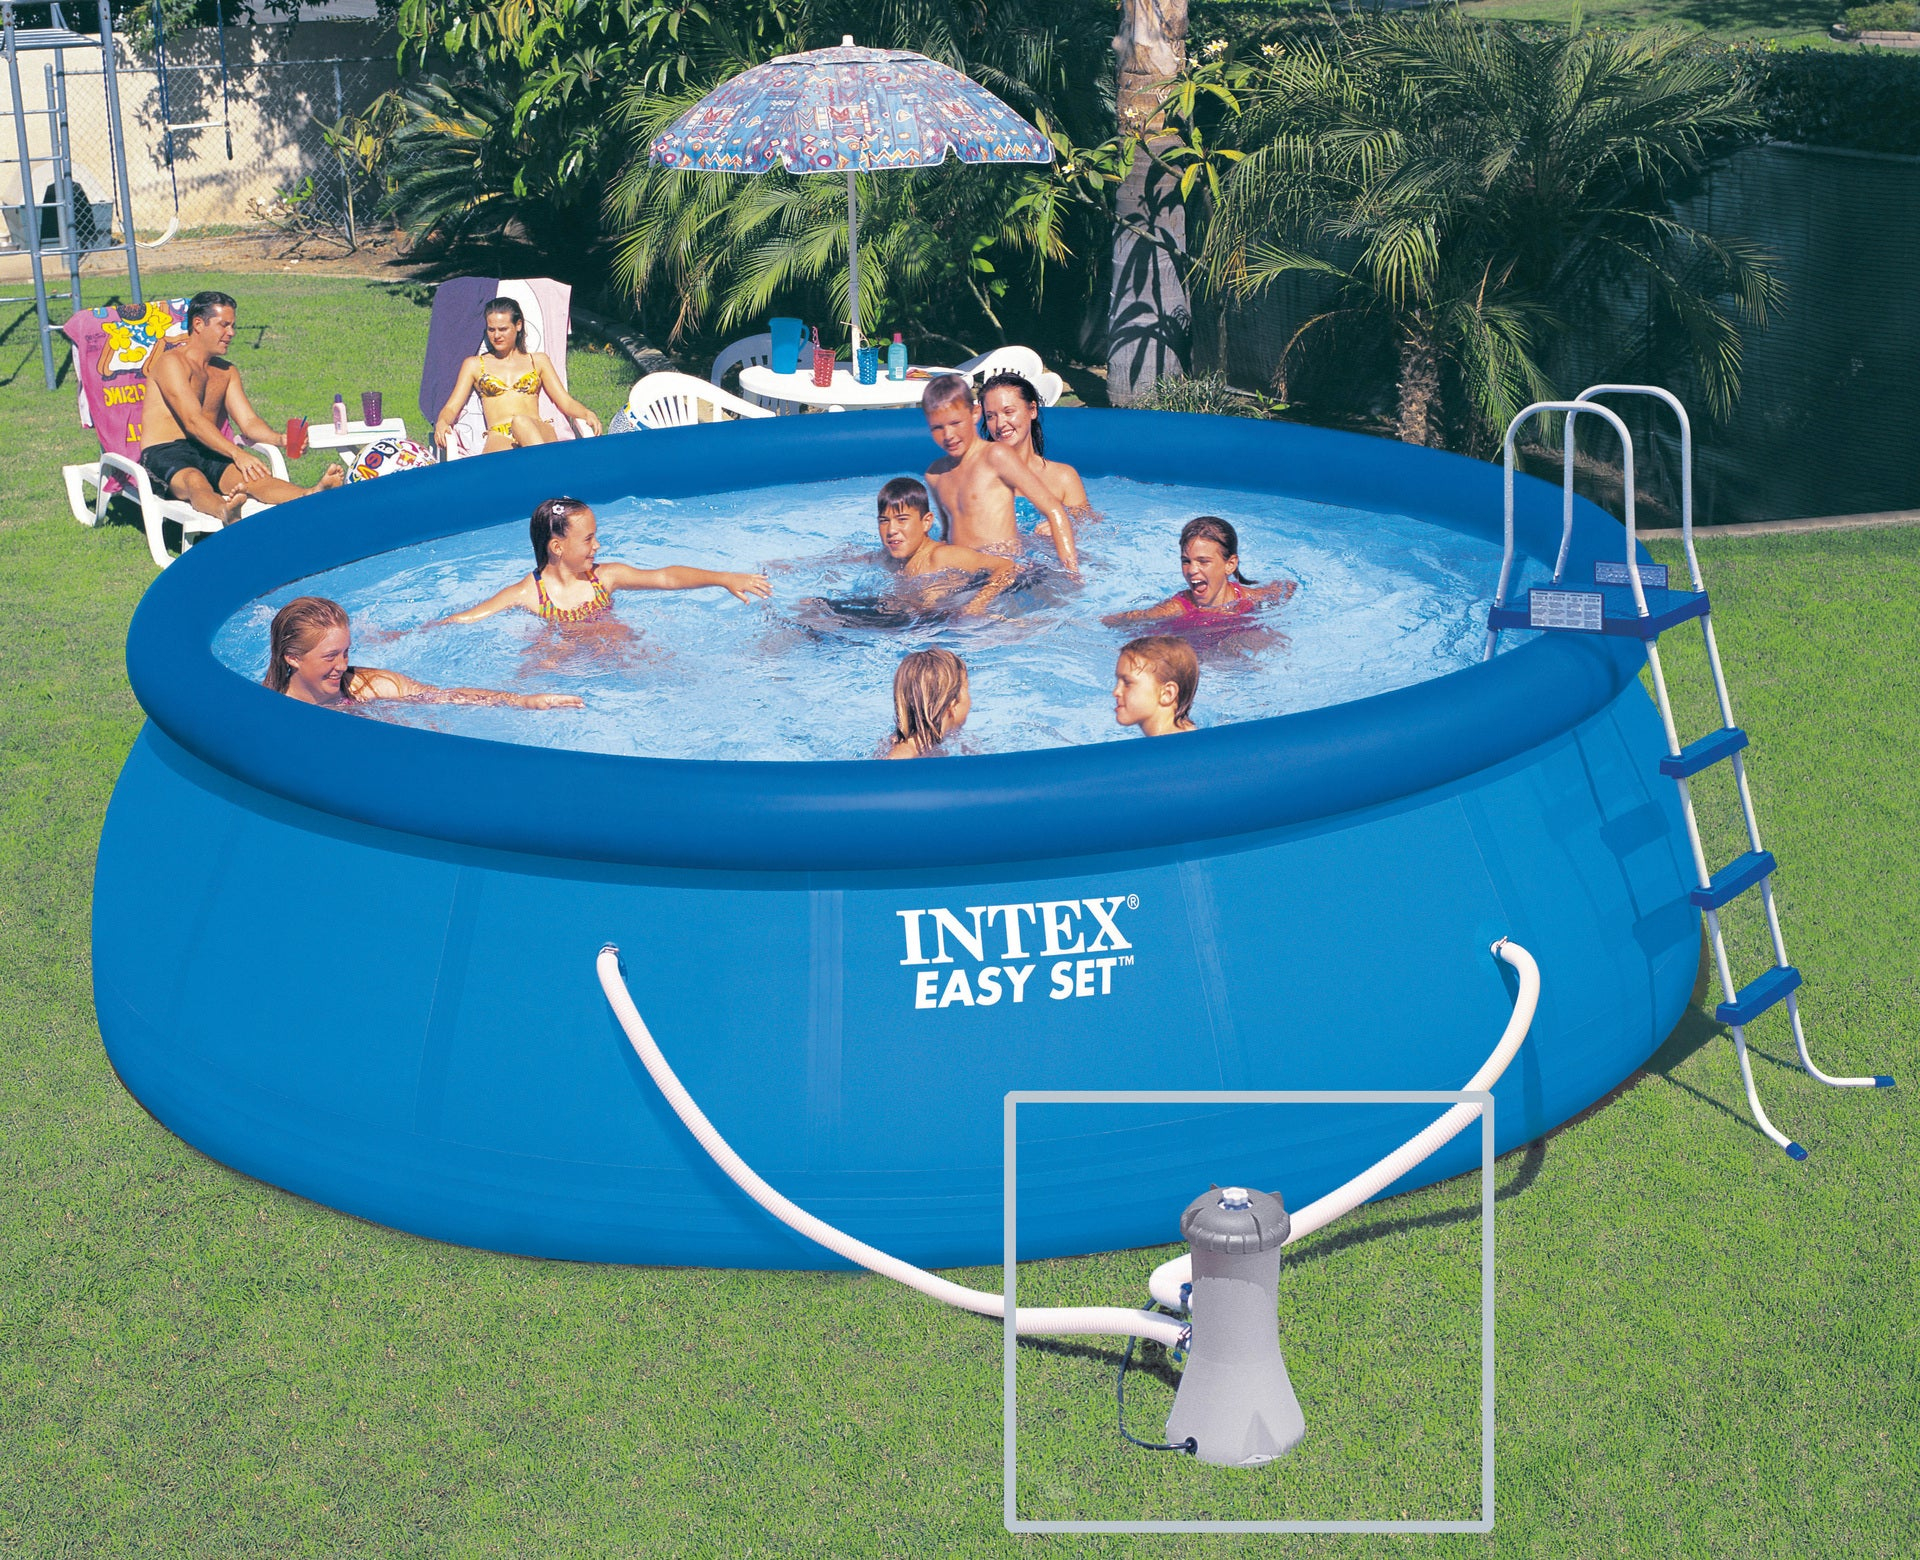 Piscine Autoportante Intex Easy Set Diam.4.57 M X H.1.22 M tout Prix Piscine Intex